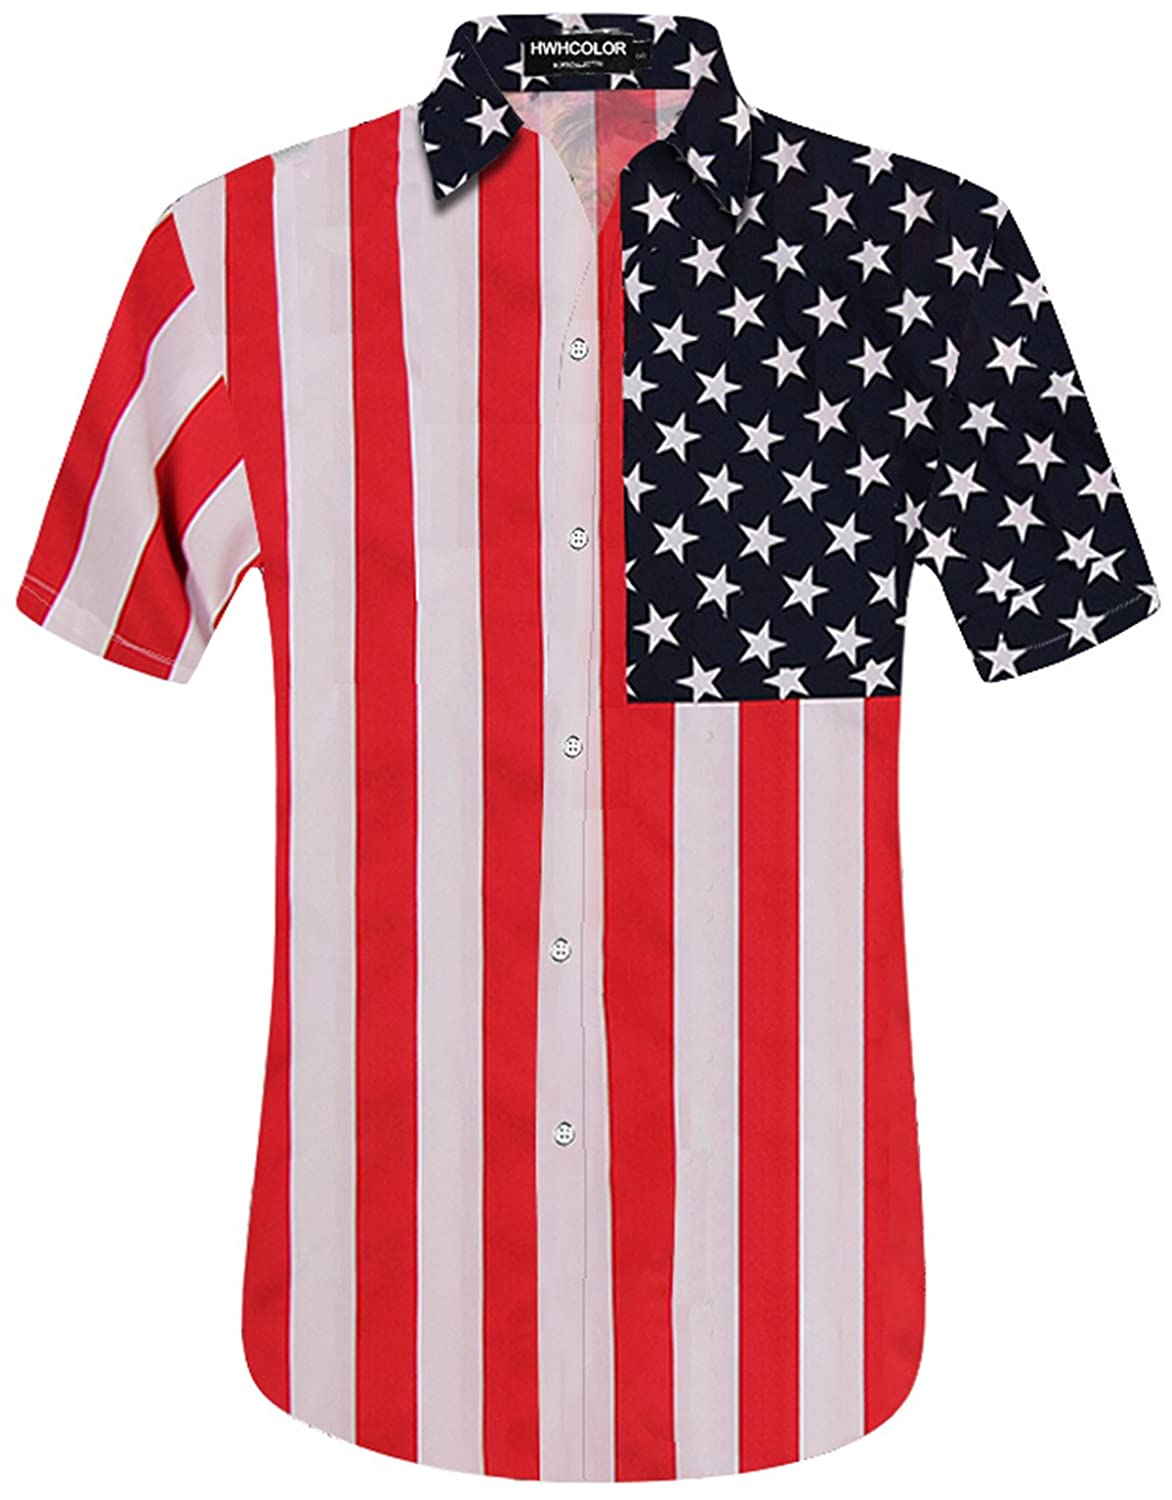 241ddb5d2 Lightweight cotton and polyester. Imported Button closure. Men and women  can wear it. Quick drying and breathable material